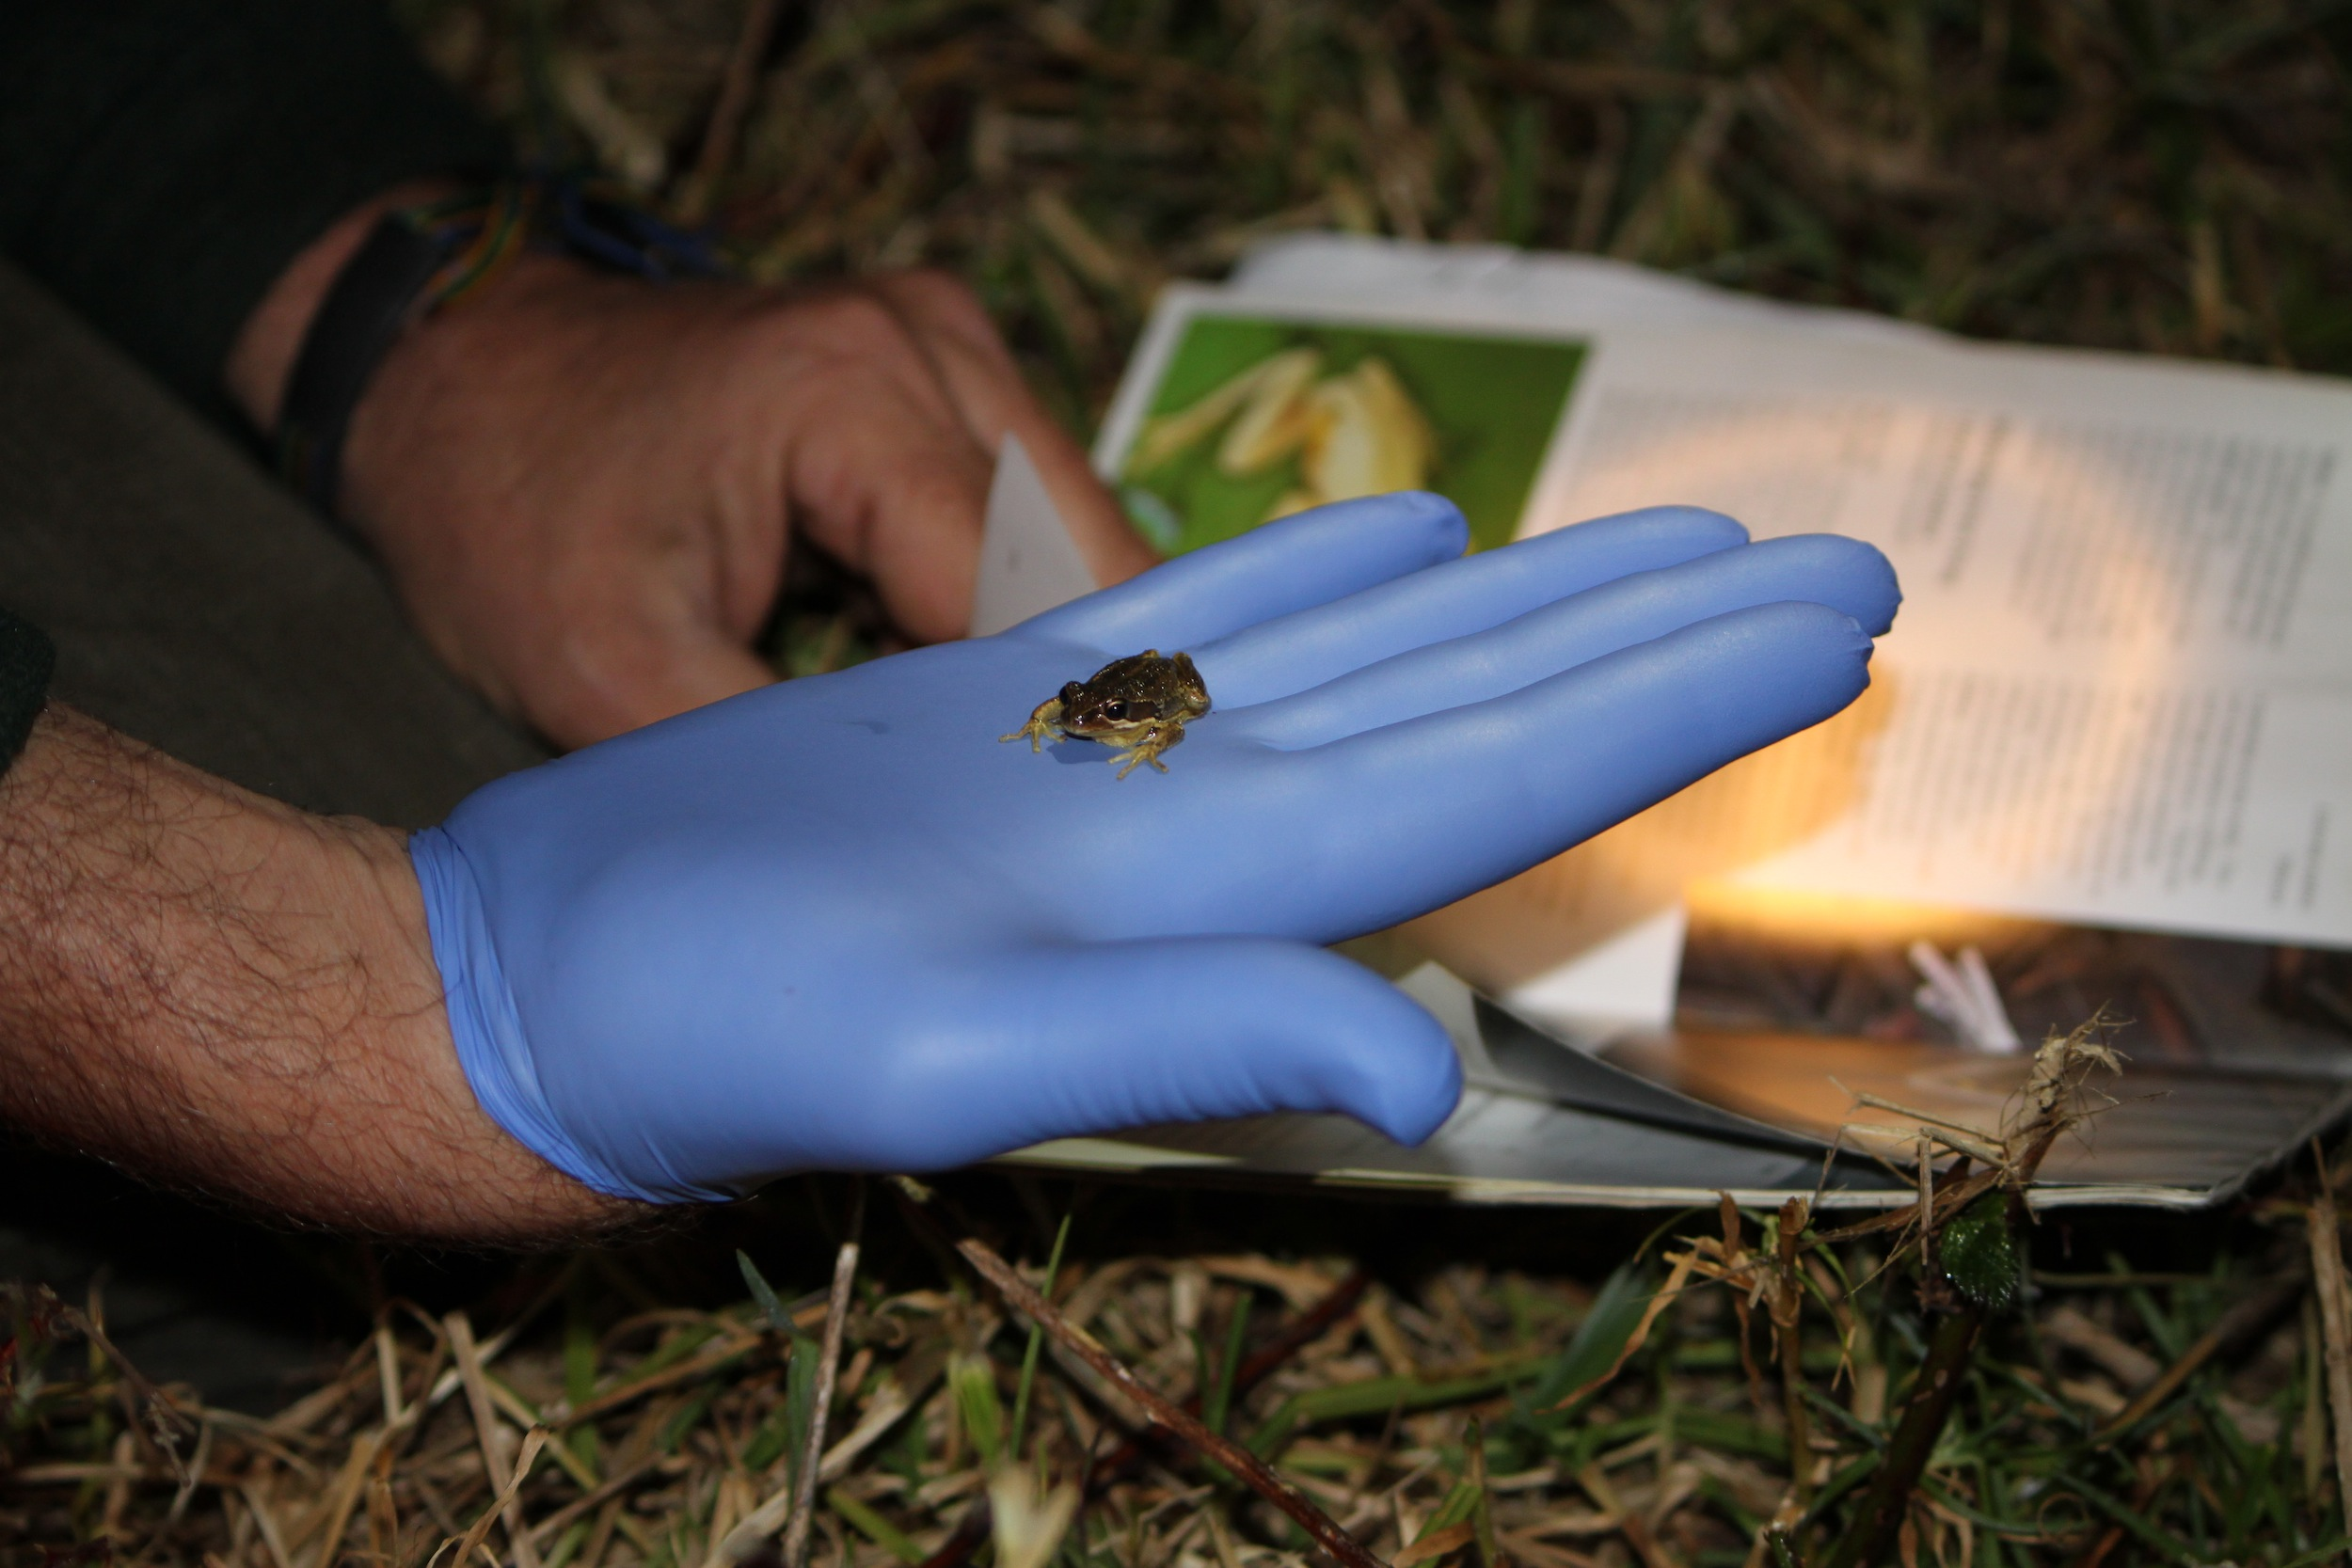 Identifying a frog - at the Panboola Bioblitz - Harrison Warne